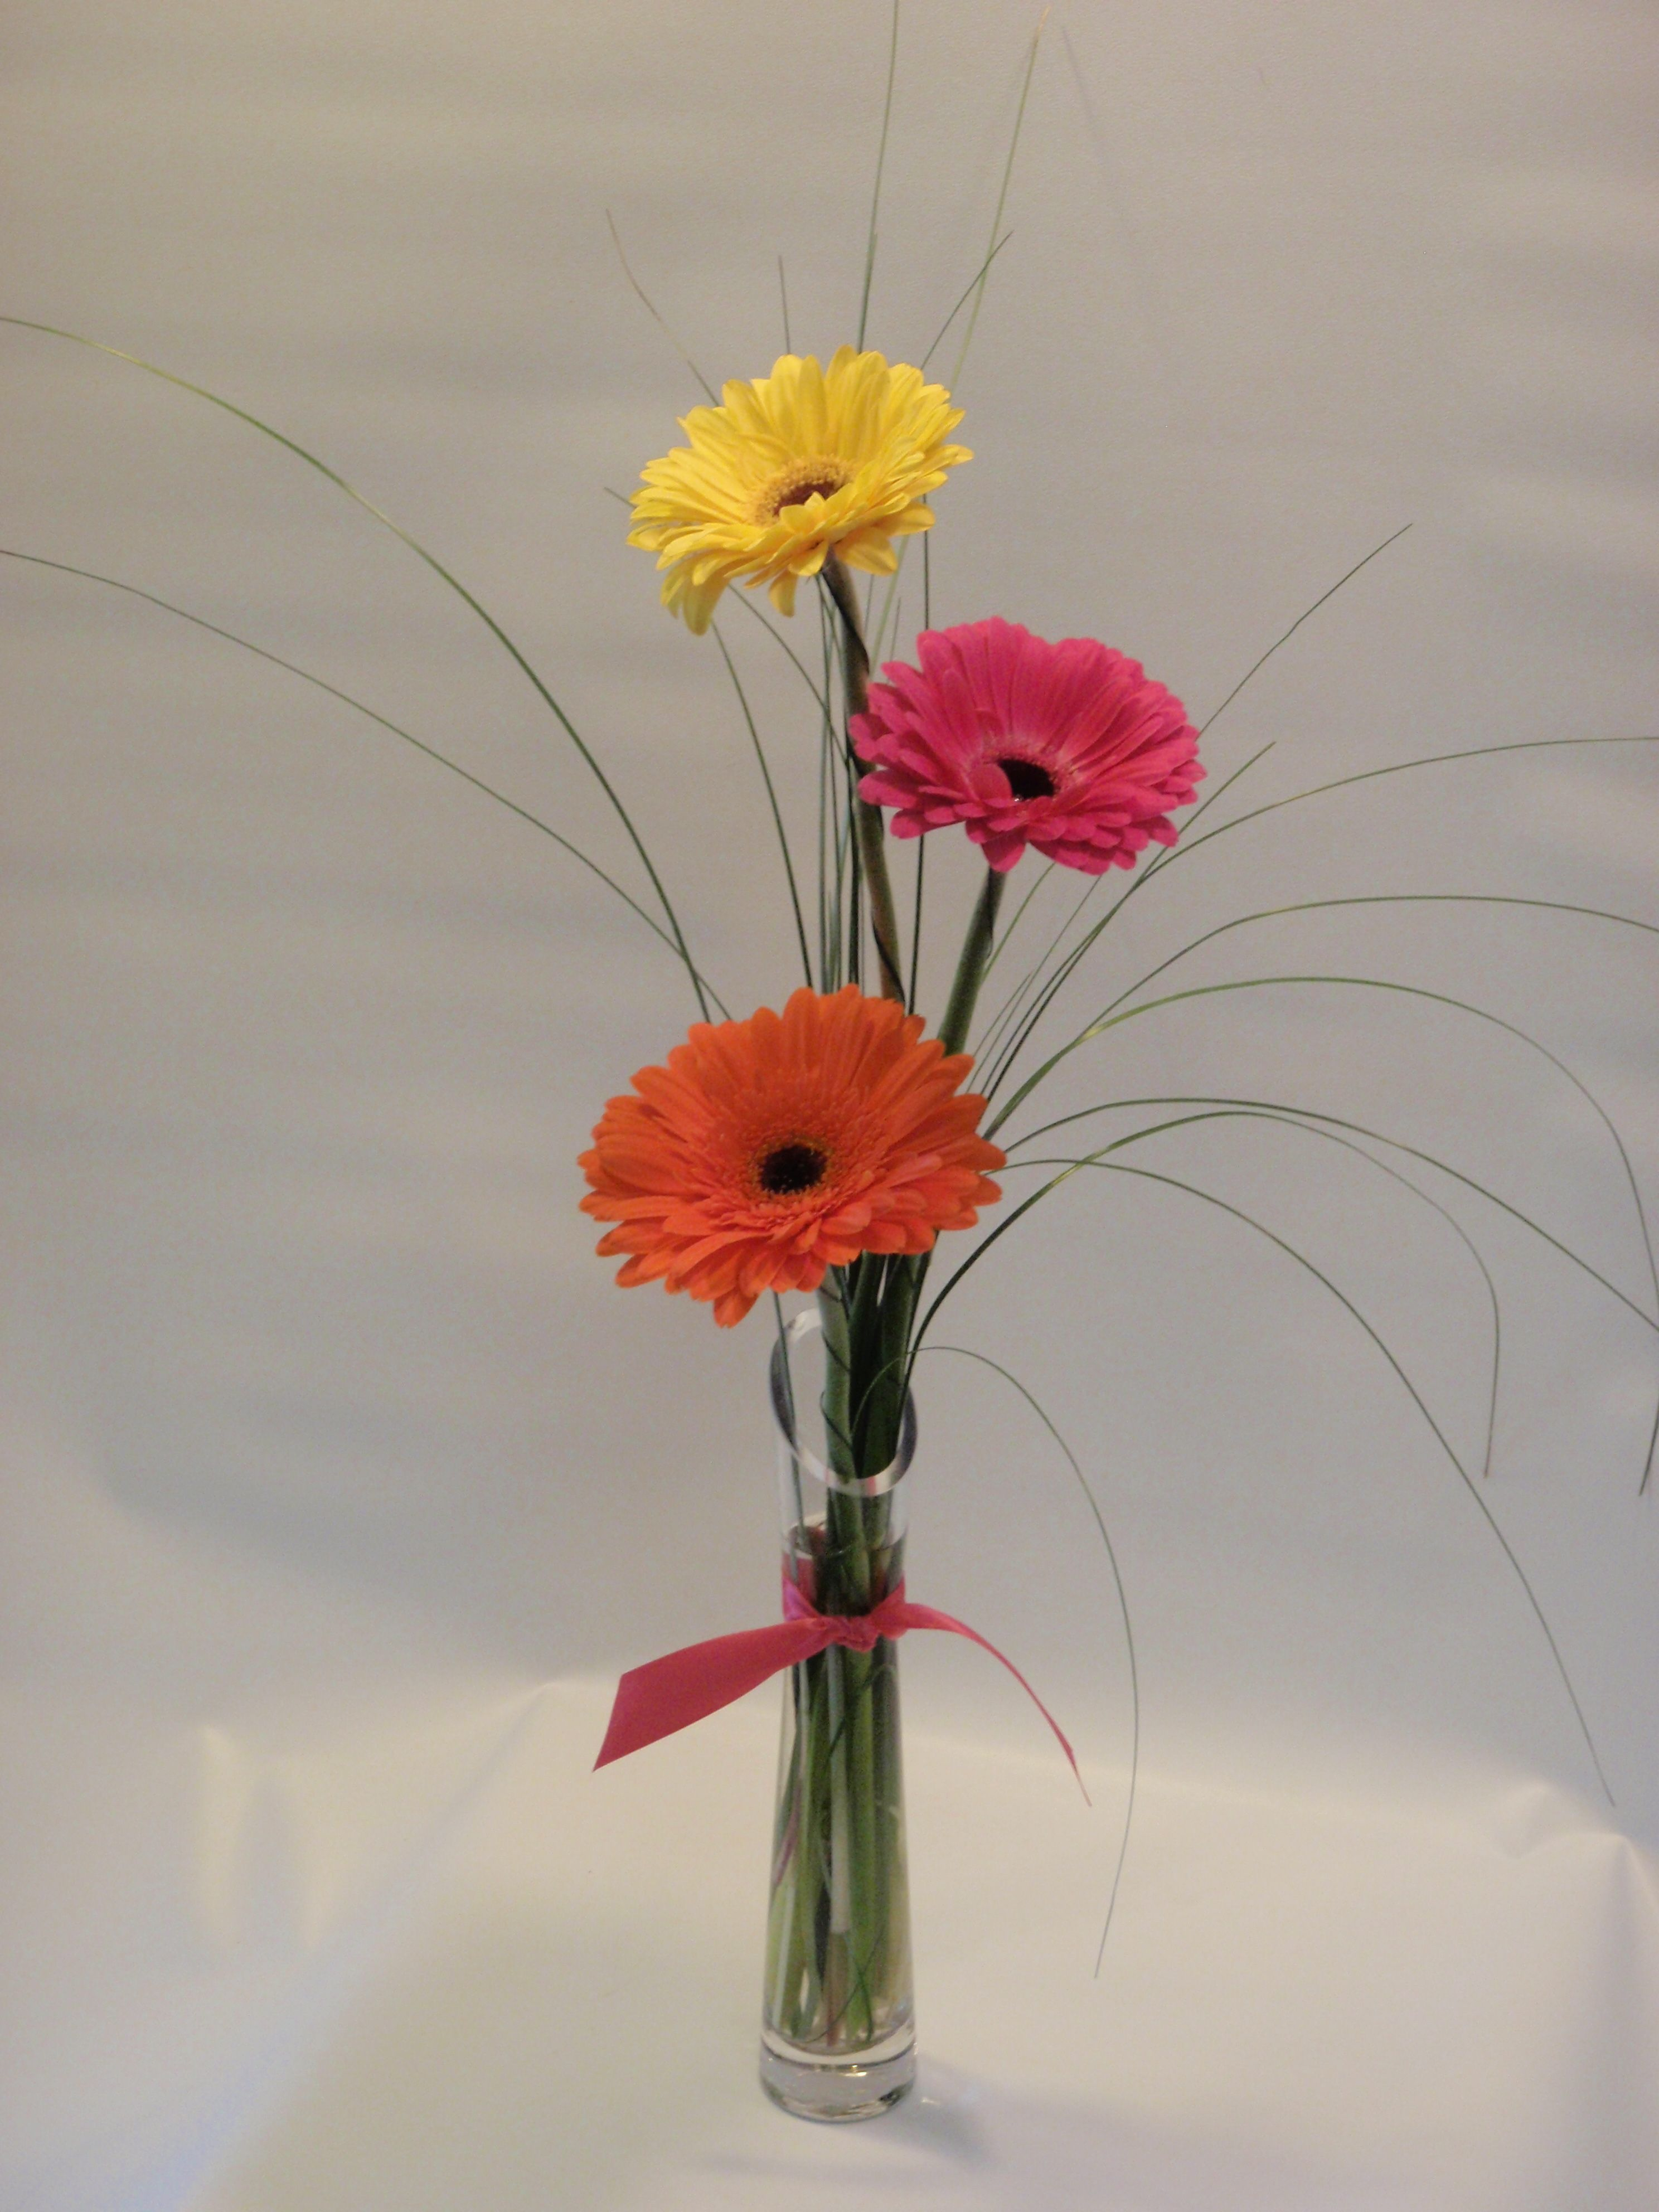 Bright colored gerbera daisies in a bud vase with bear grass bright colored gerbera daisies in a bud vase with bear grass reviewsmspy